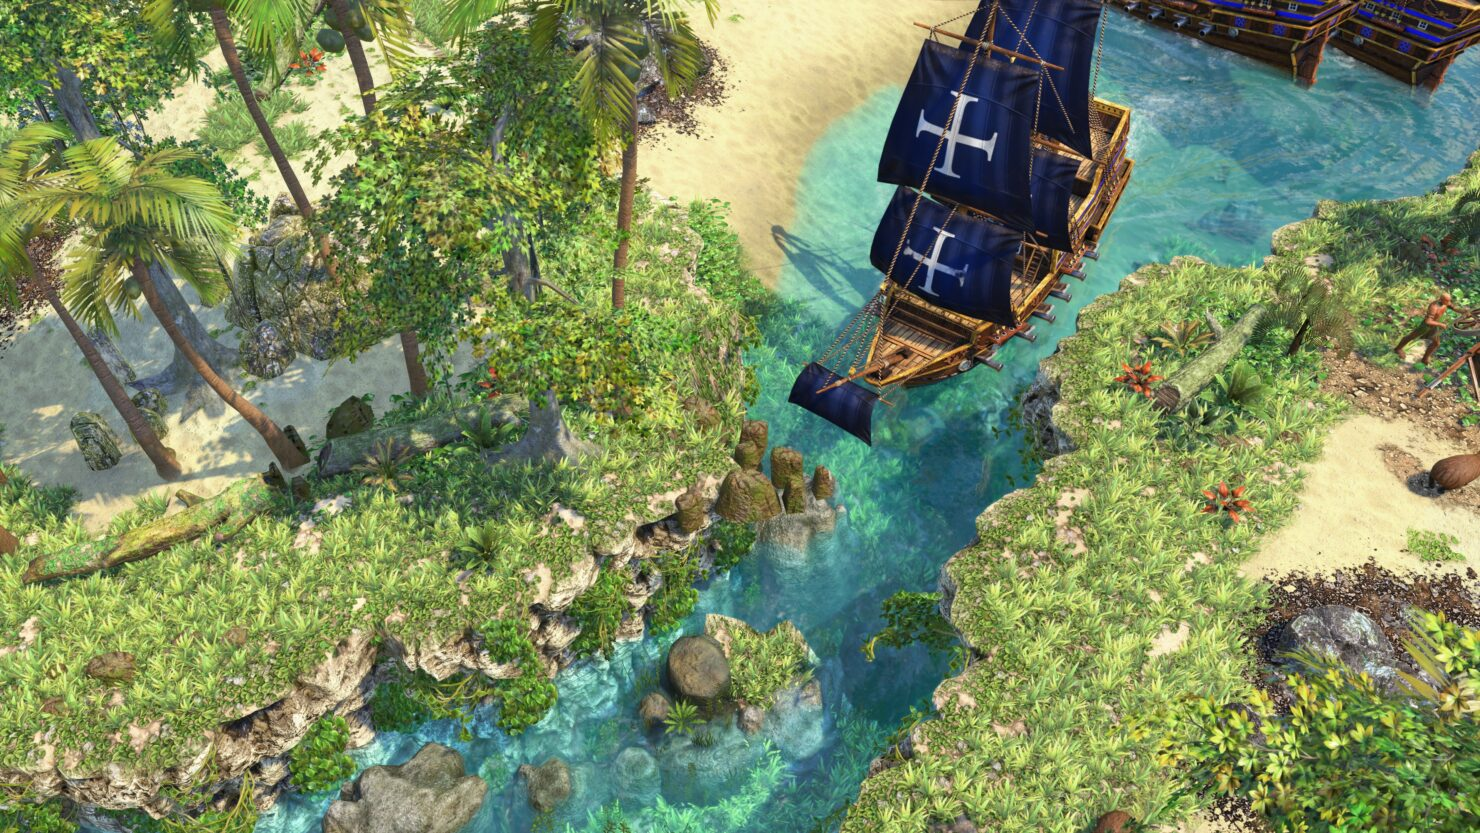 age-of-empires-iii-definitive-edition-preview-05-asset-12